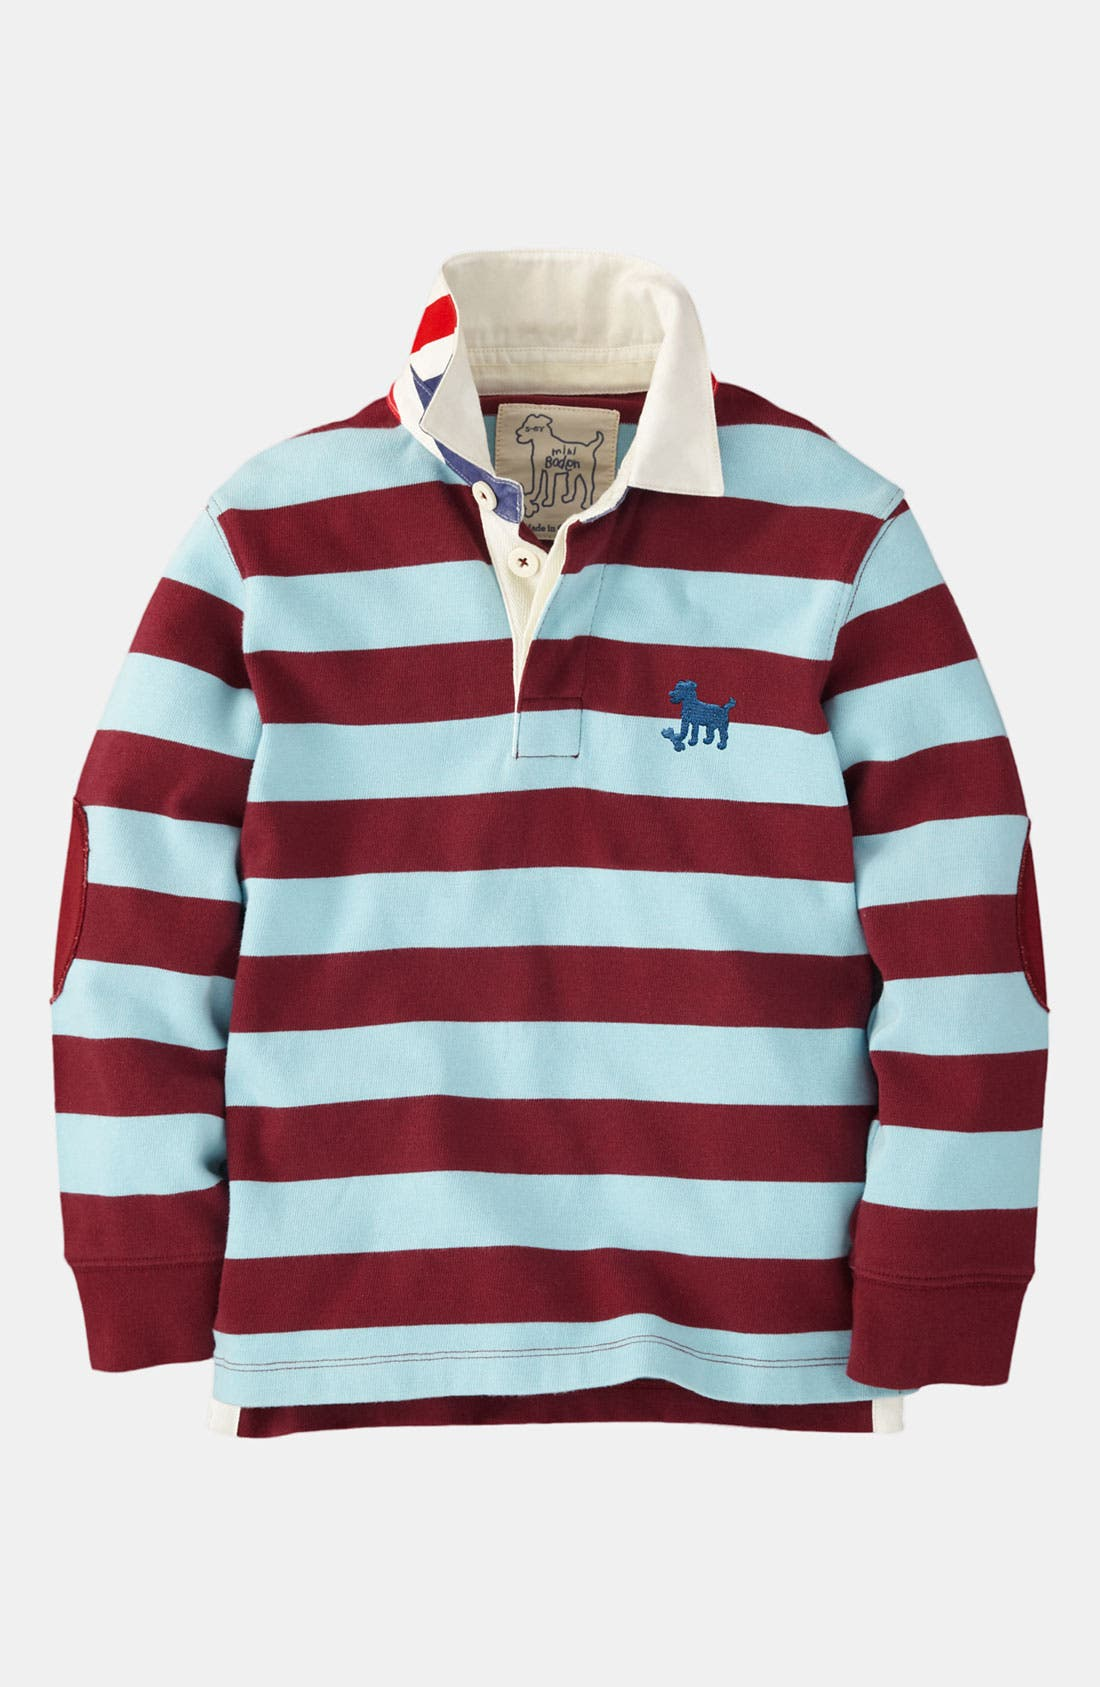 Alternate Image 1 Selected - Mini Boden Rugby Shirt (Toddler)